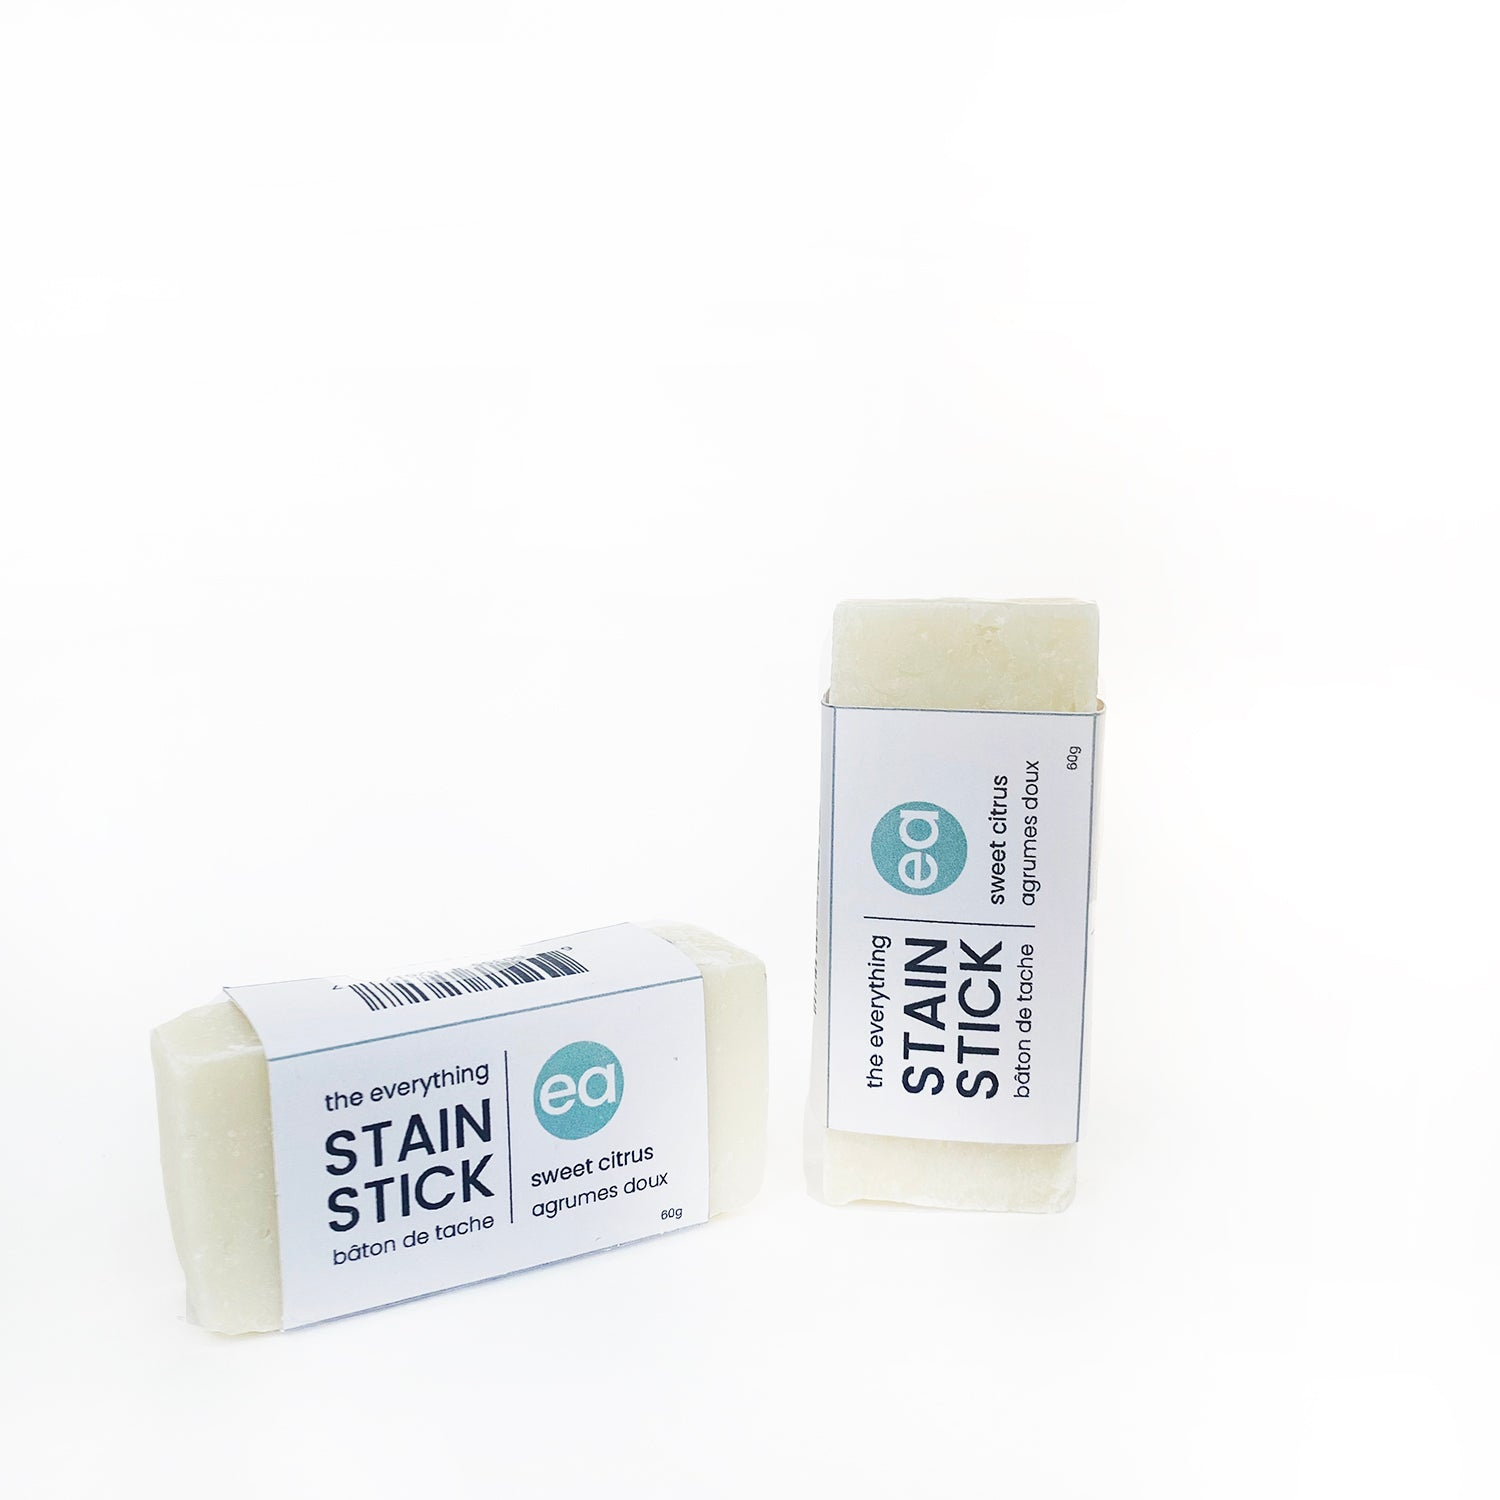 stain stick | eco+amour